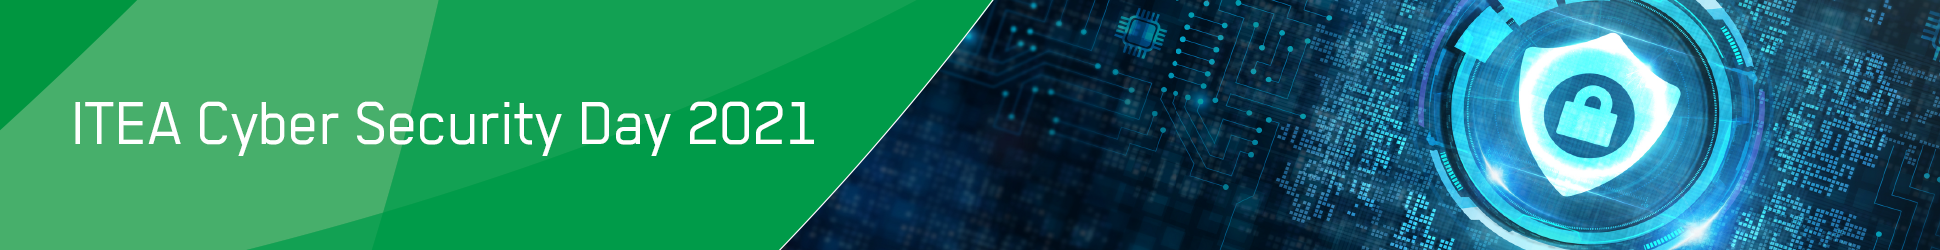 Cyber Security Day header